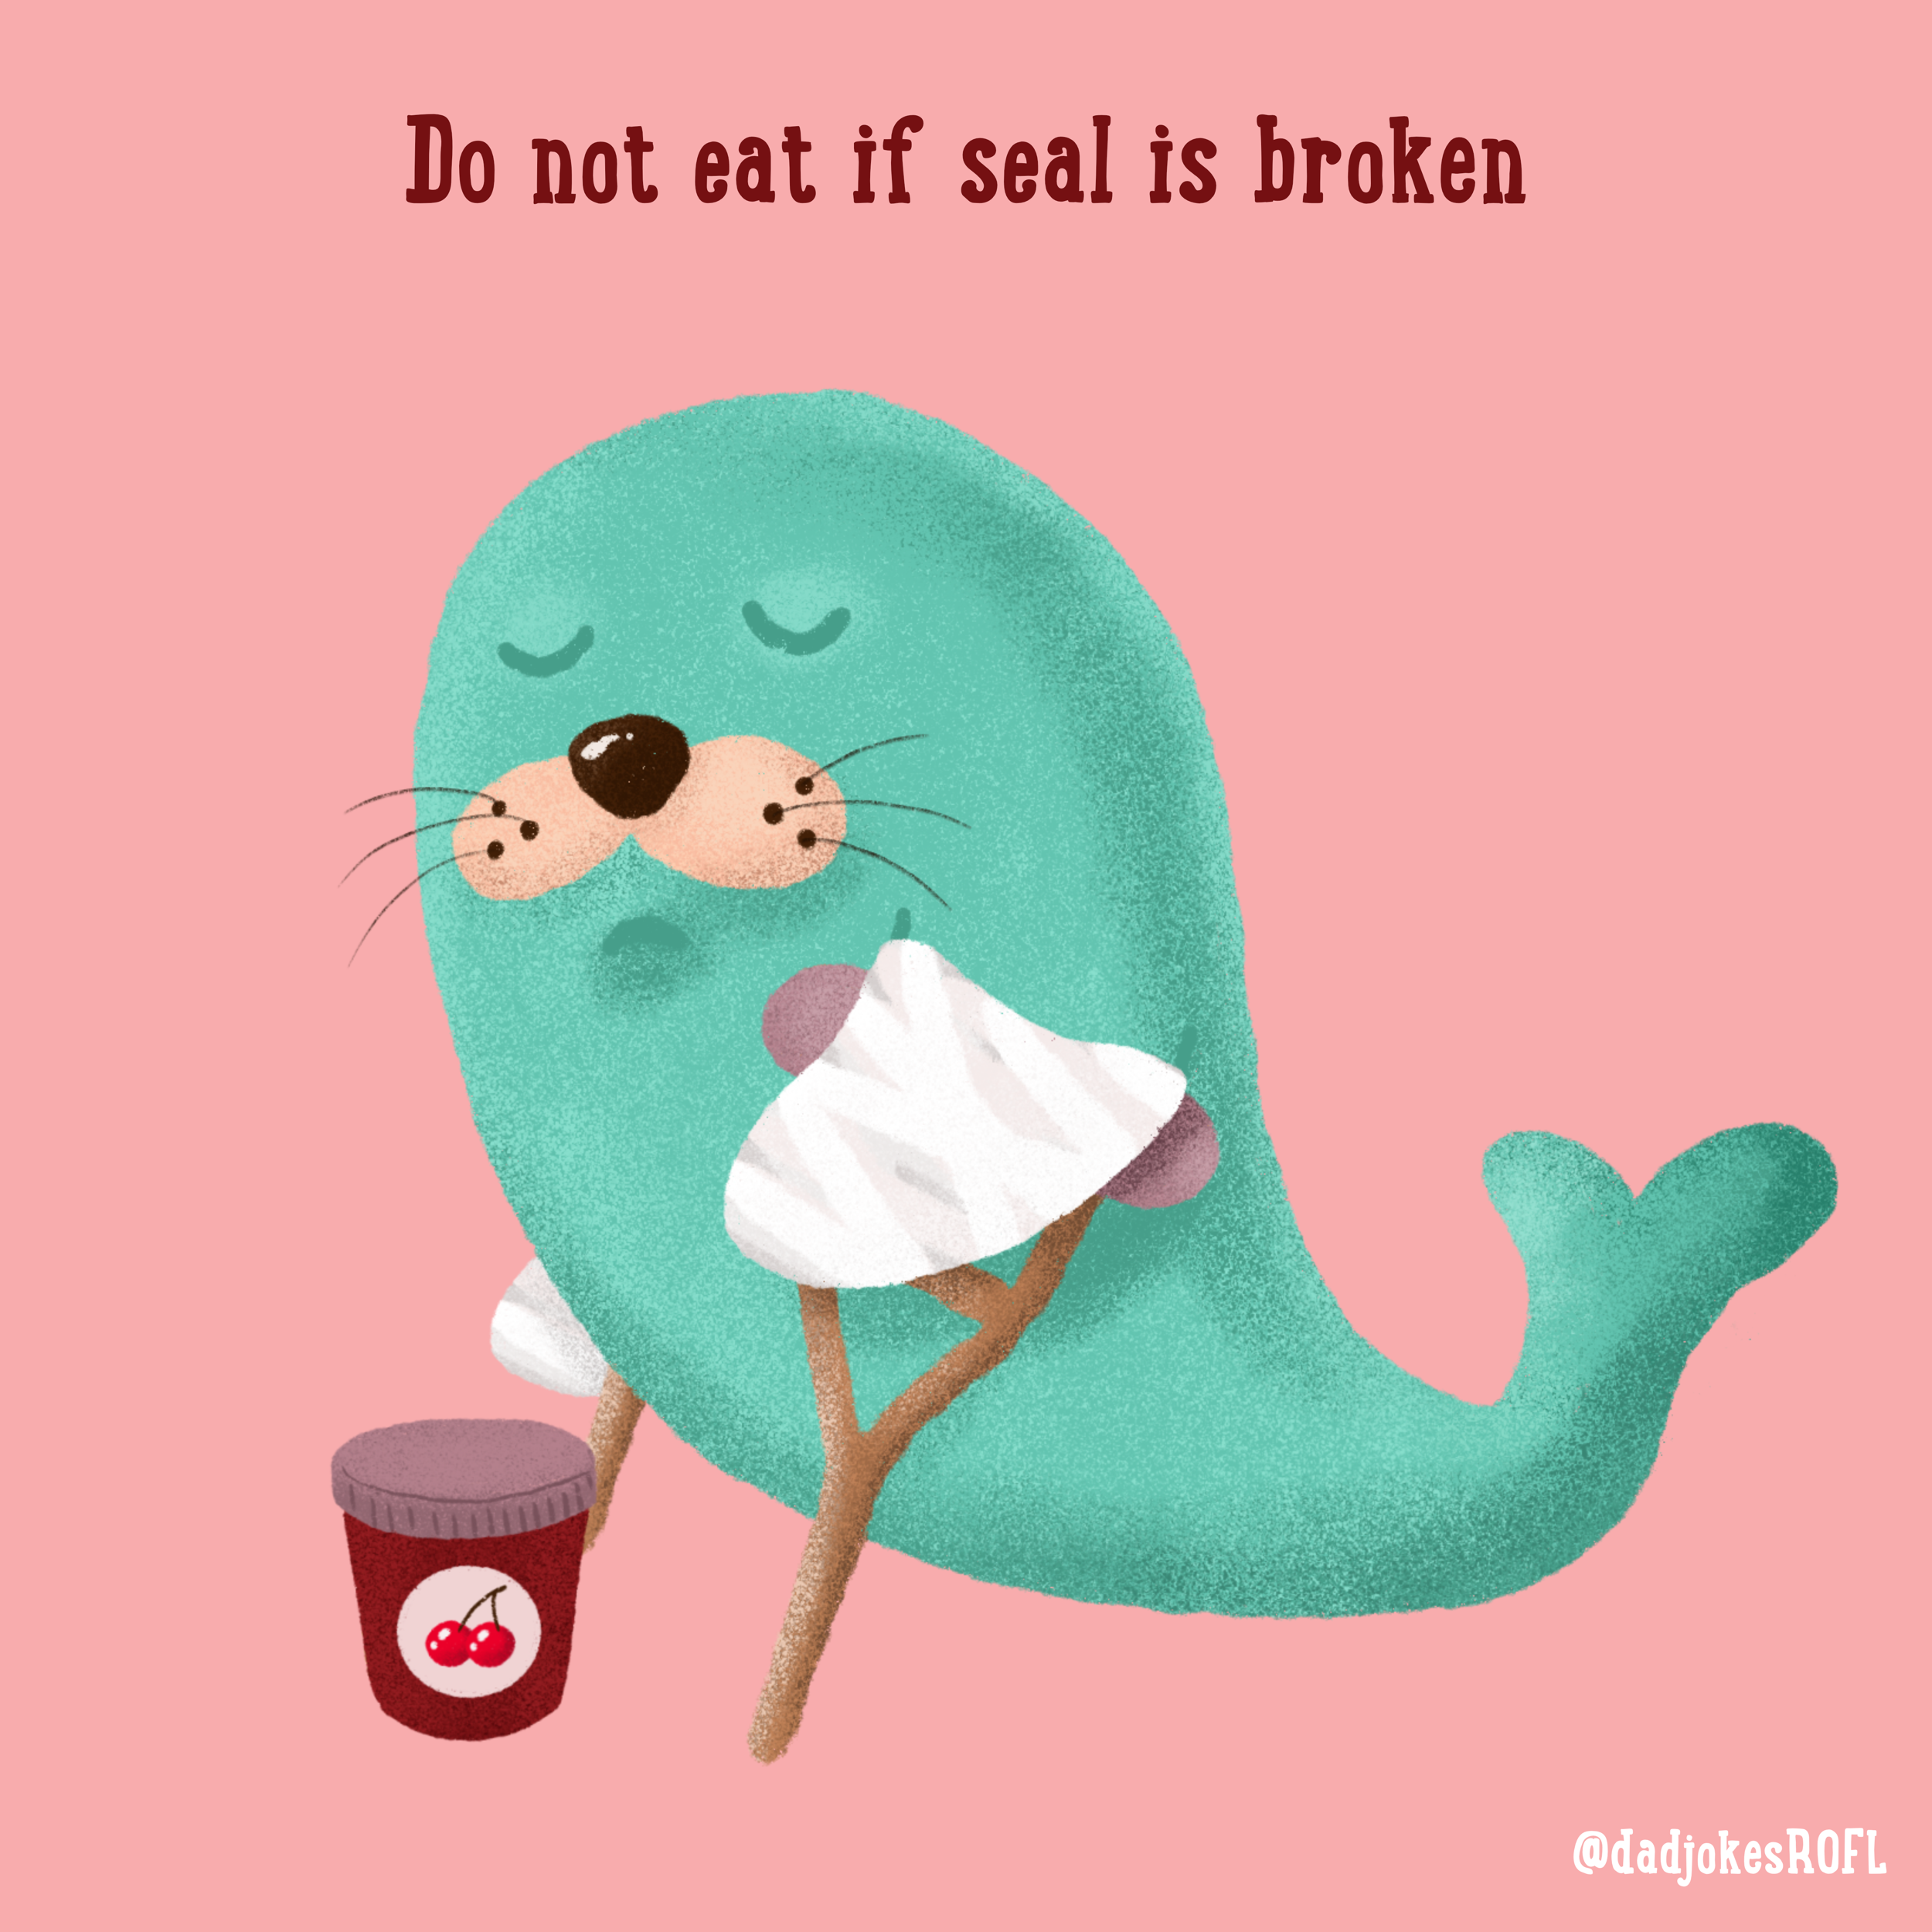 Do not eat if seal is broken